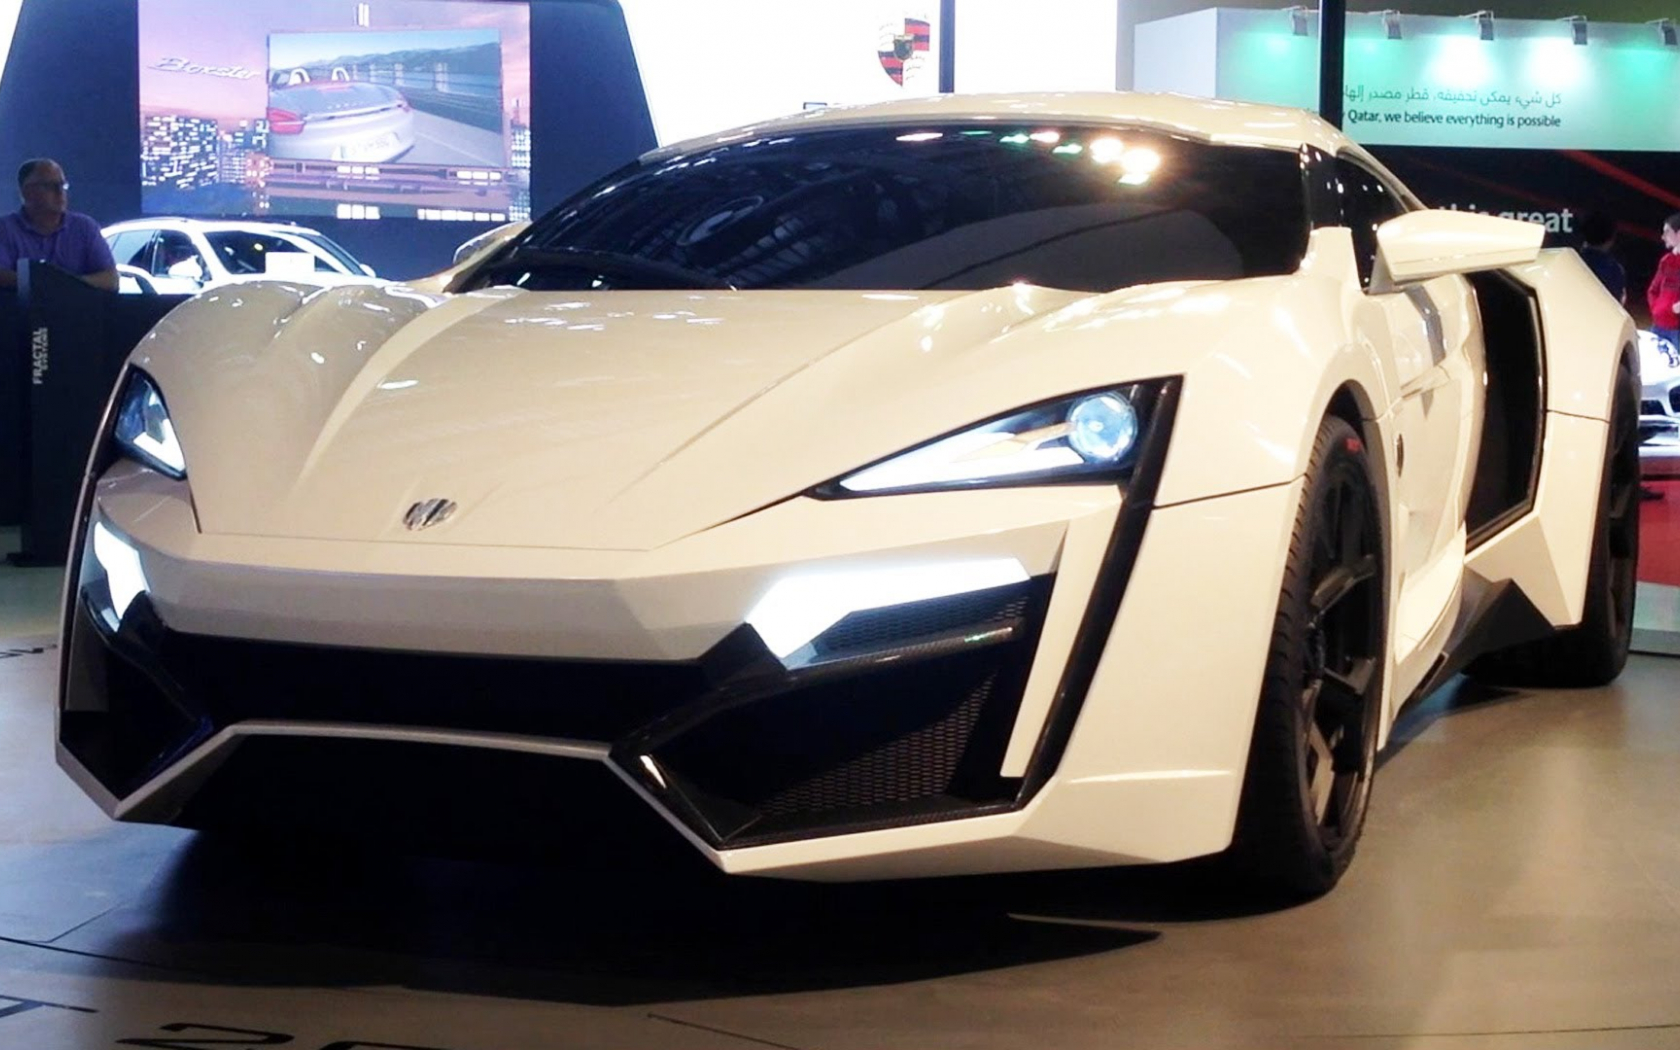 Free Download Lykan Hypersport Hypercar Wallpapers 61 Wallpapers Hd 1920x1080 For Your Desktop Mobile Tablet Explore 90 Hypercar Wallpapers Hypercar Wallpapers